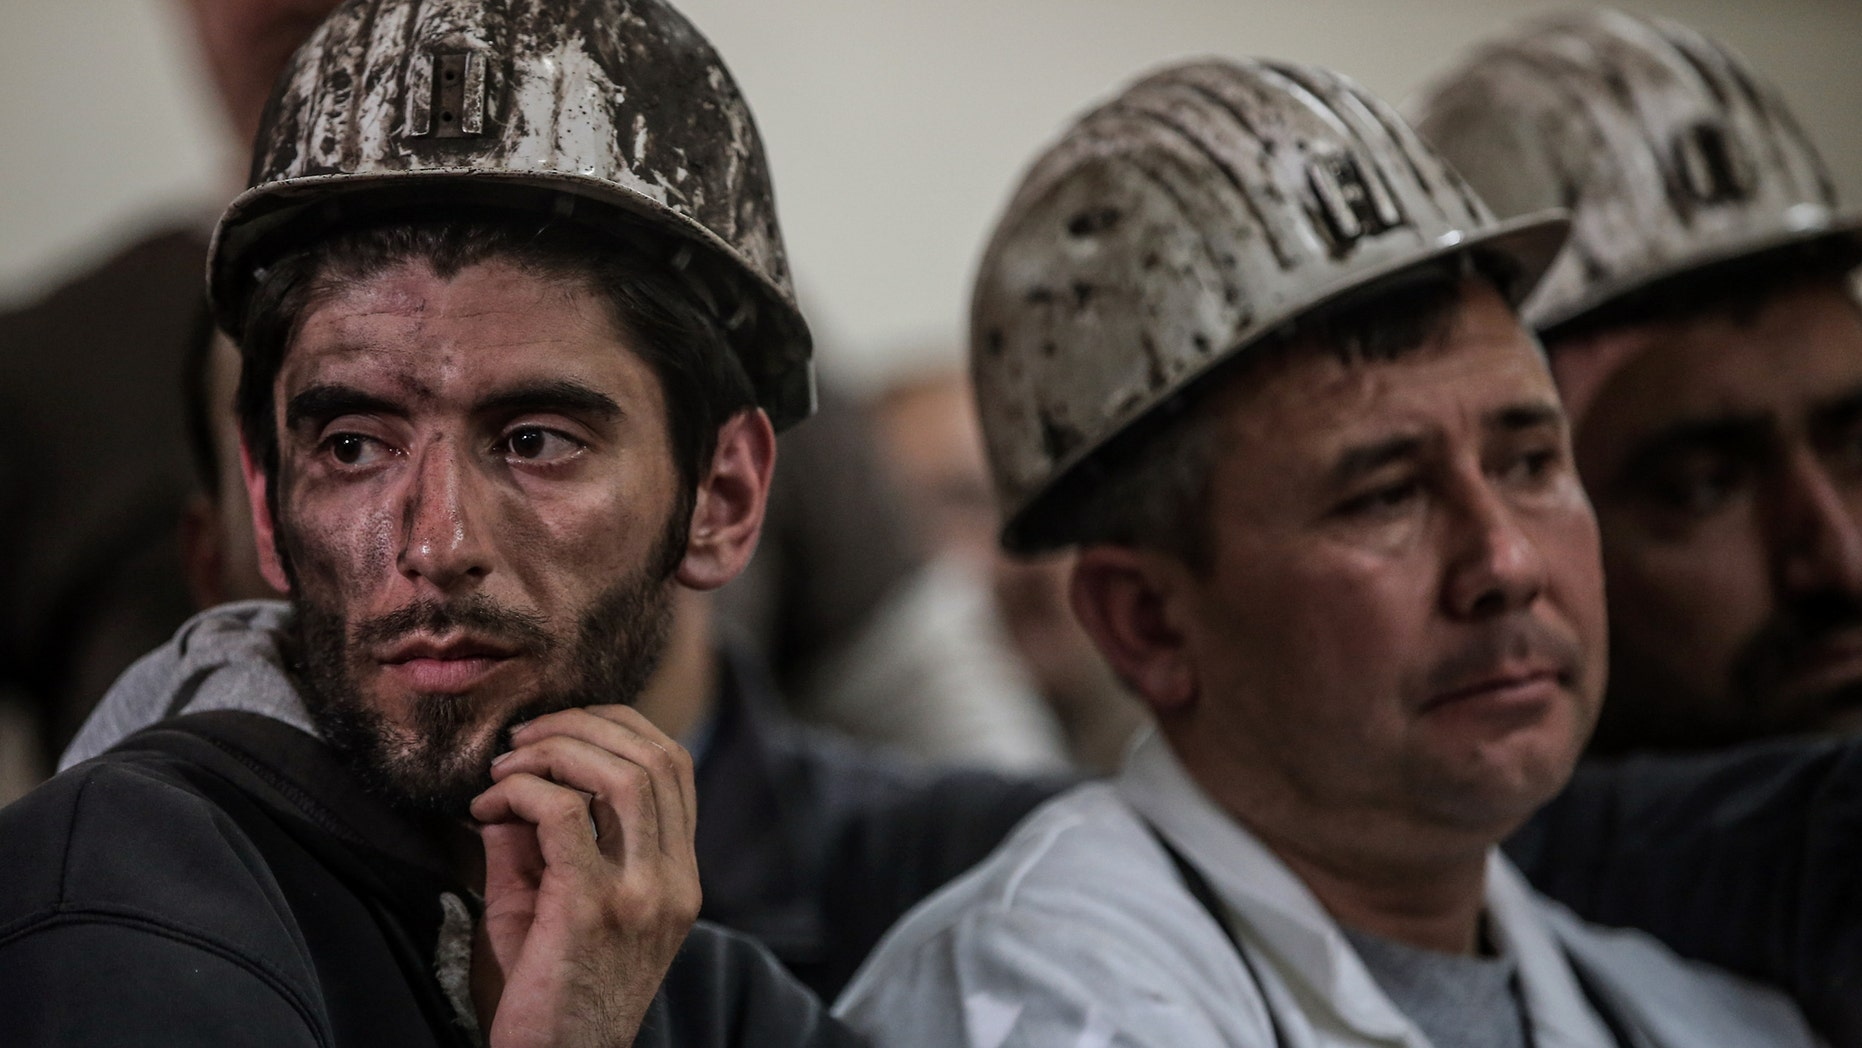 May 16, 2014 - Turkish miners listen to the mining company's owner, Alp Gurkan, during a news conference in Soma, Turkey. The Turkish mining company defended its safety record, 4 days after more than 284 people died in an underground blaze at its coal mine in western Turkey.